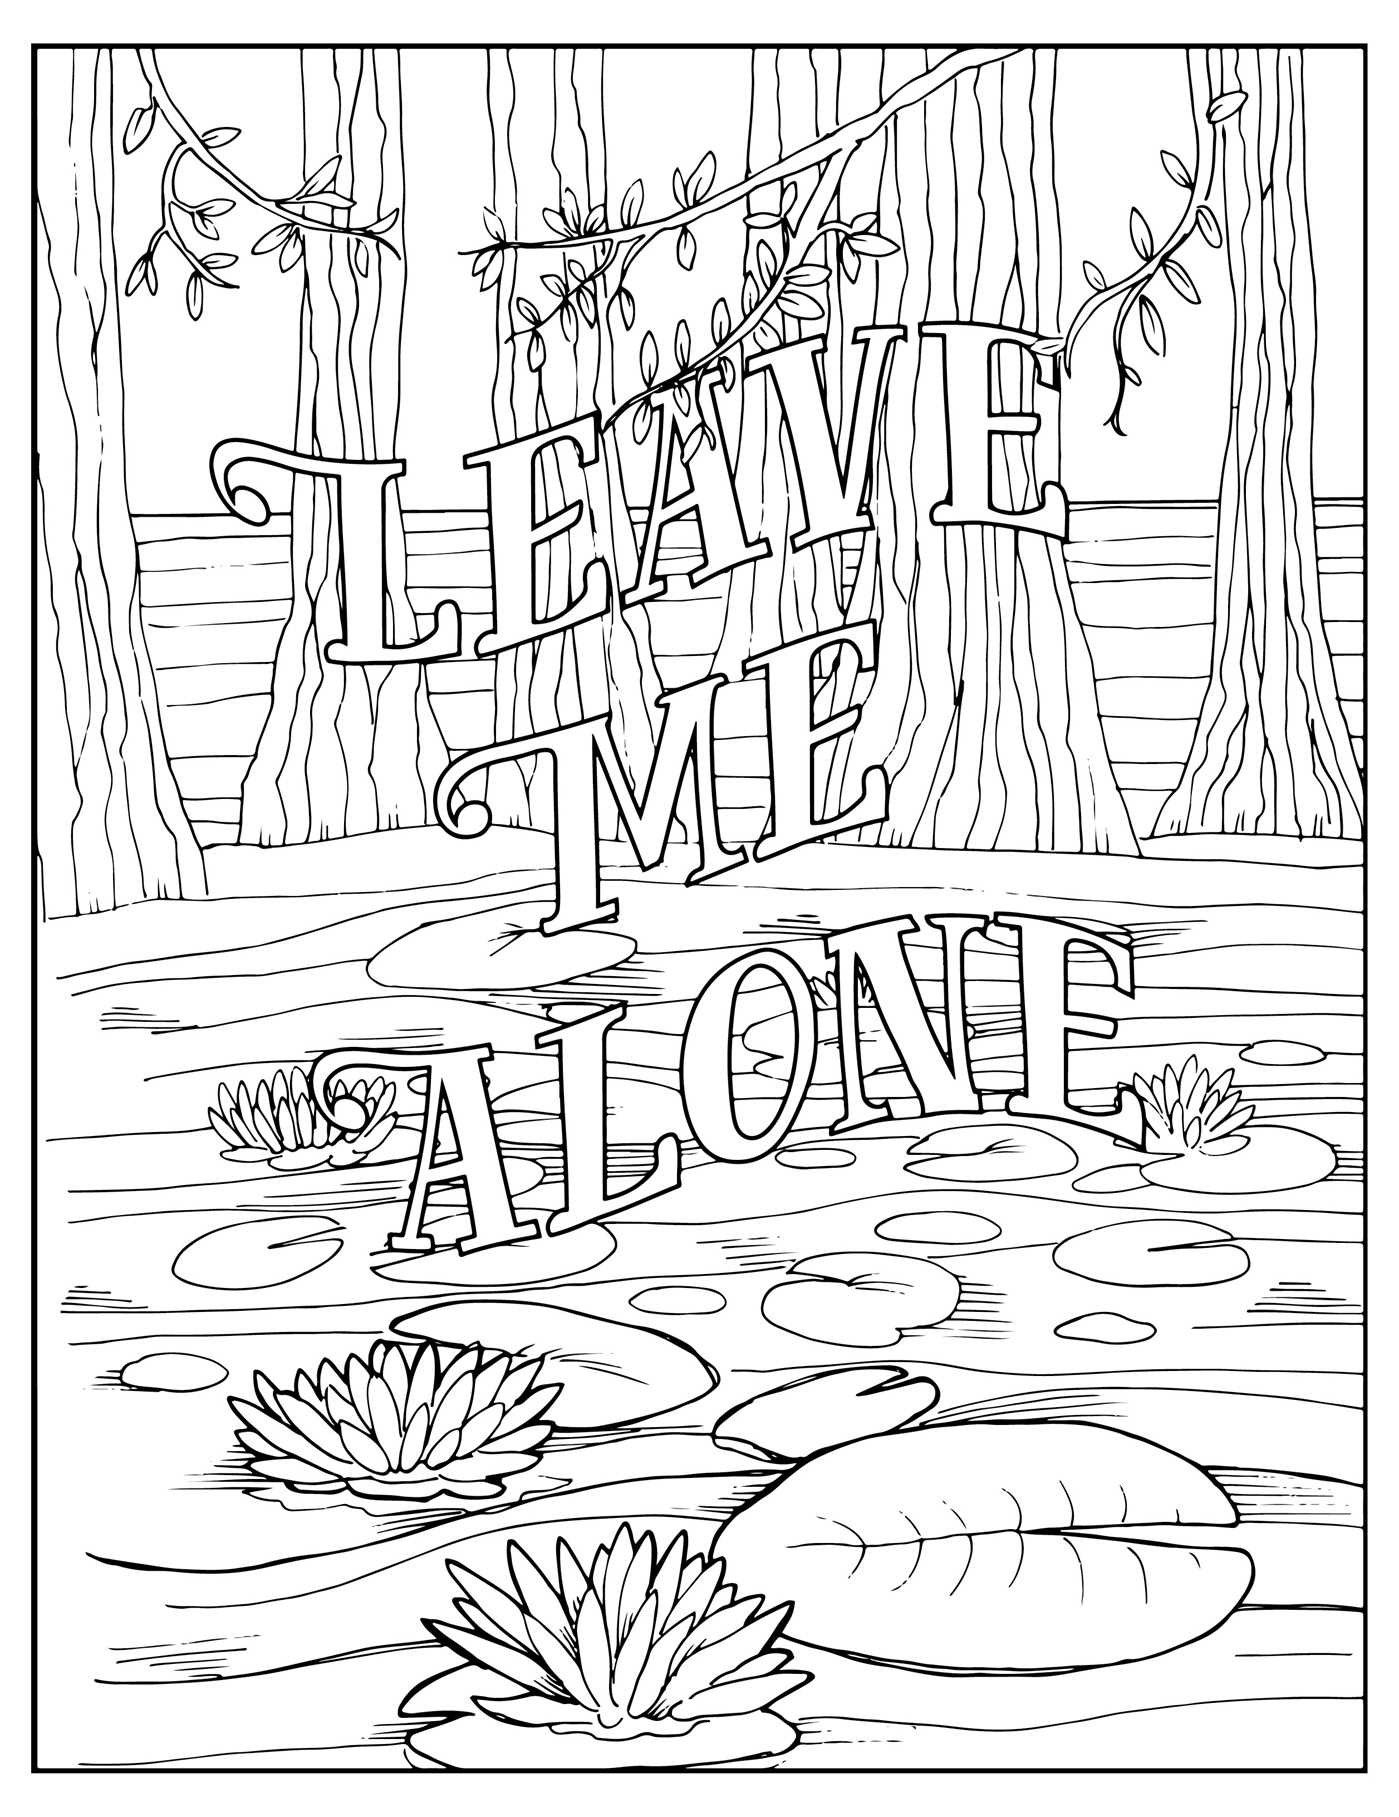 Bad word coloring pages - Fuck Off I M Coloring By Dare You Stamp Co Color The Shit Out Of This New Stress Relieving Swear Word Adult Coloring Book